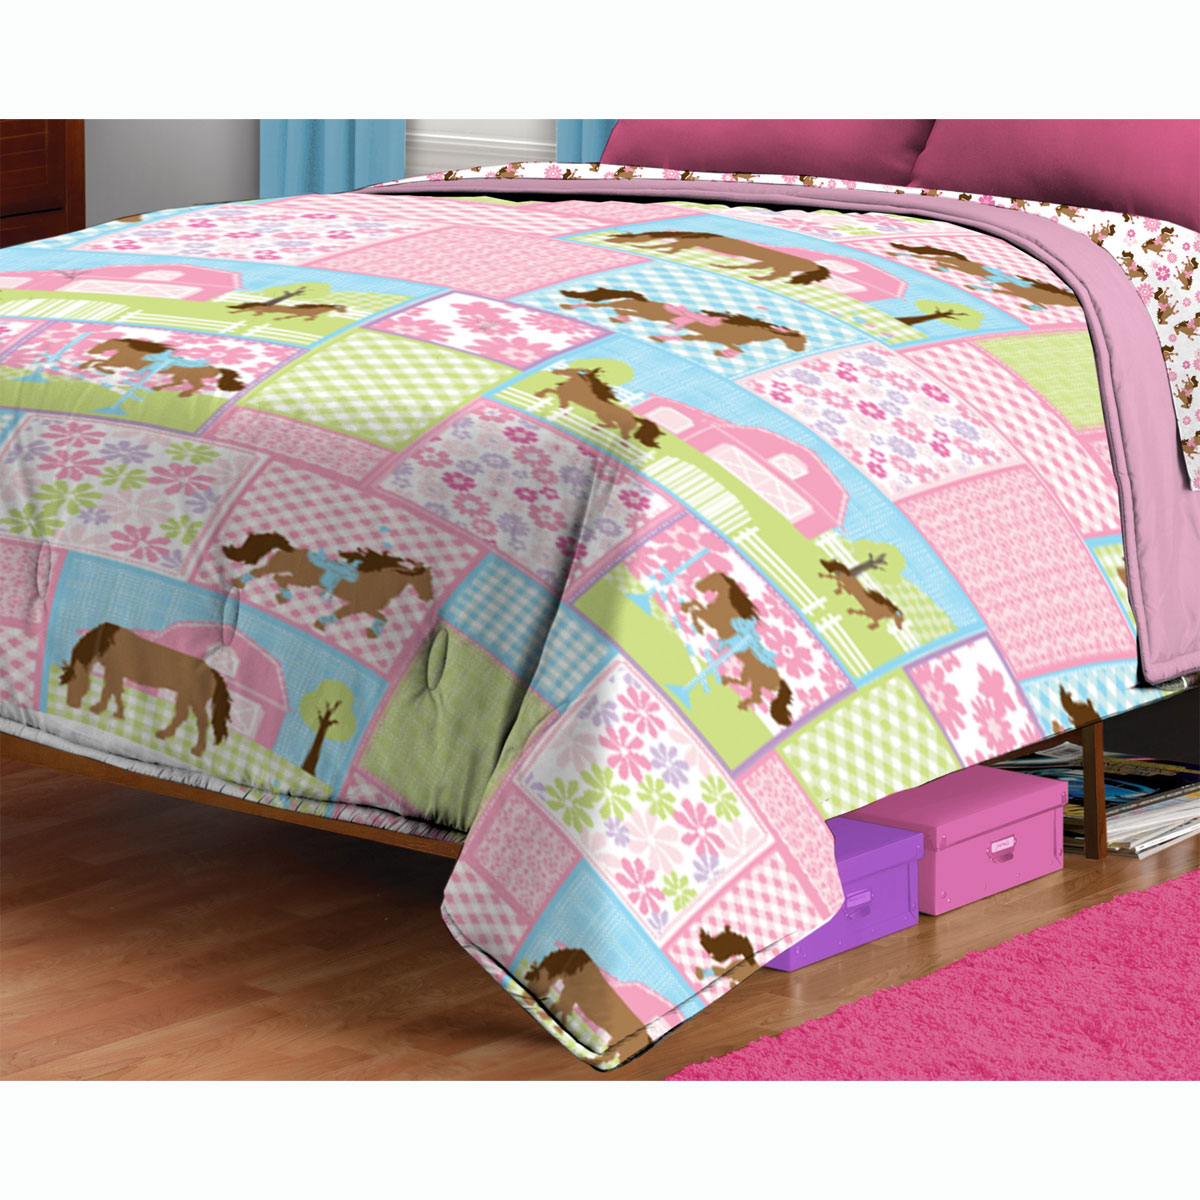 Twin Bed Comforter Pretty Pony Bedding